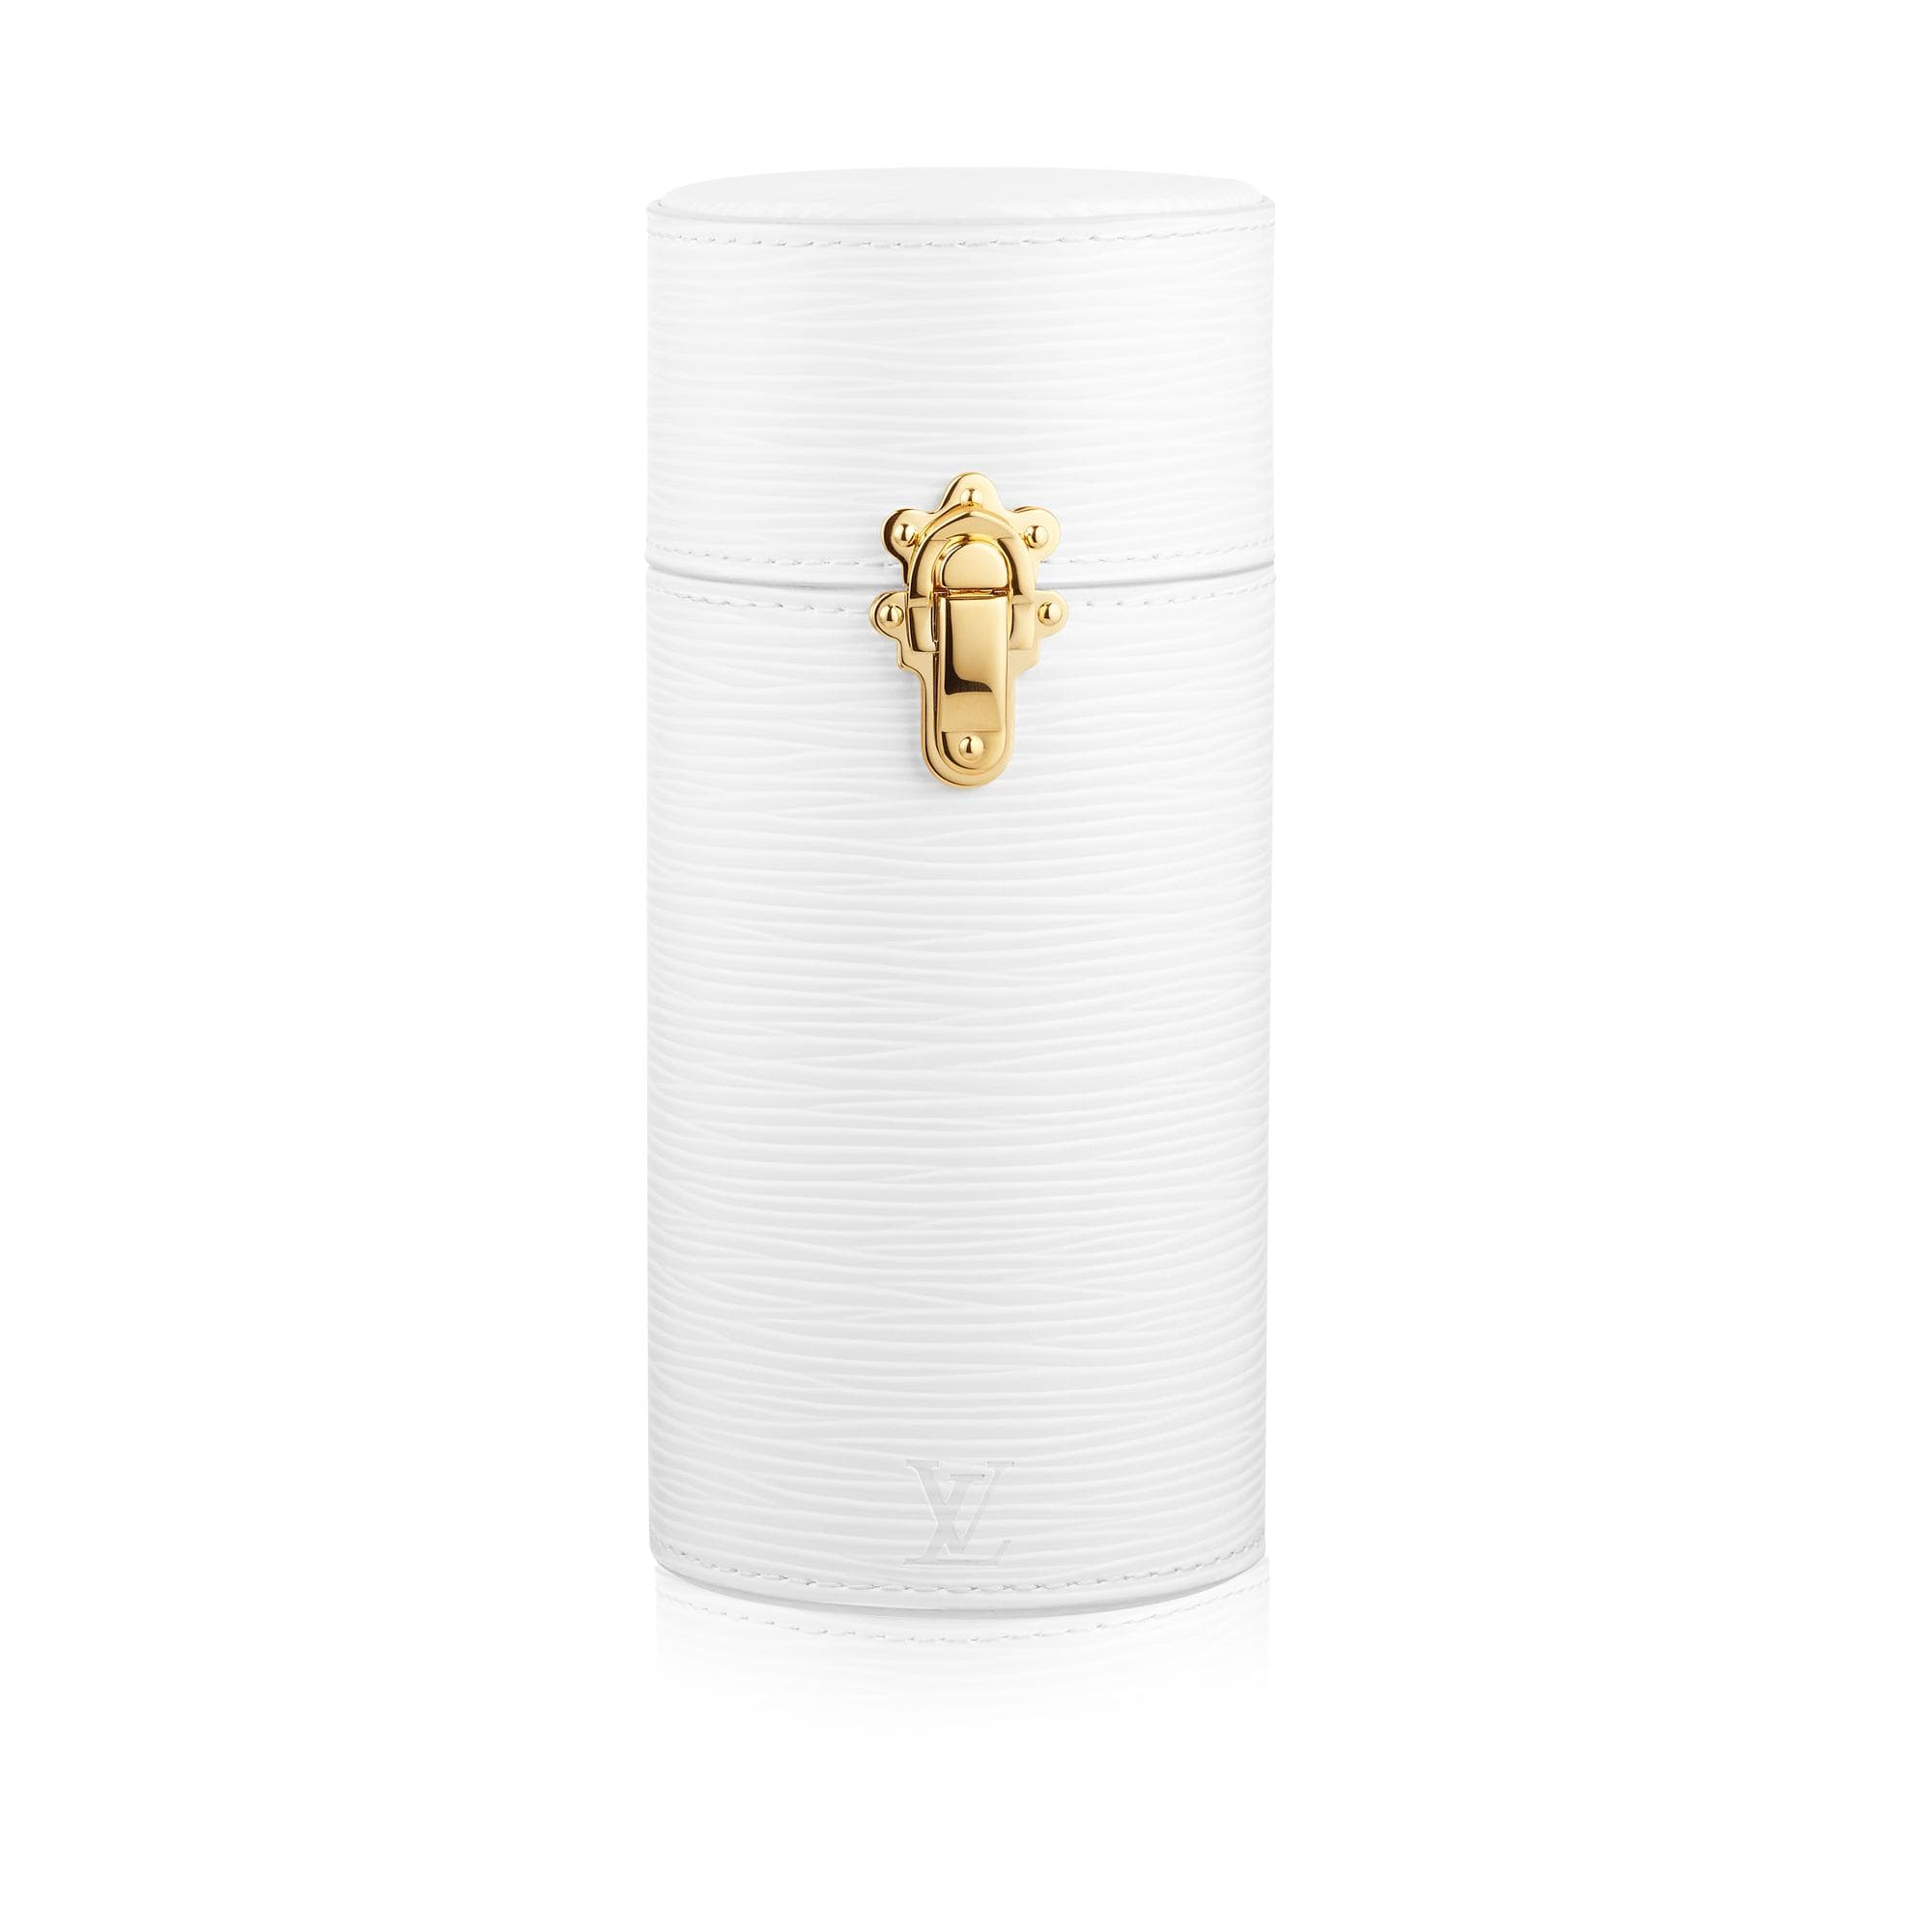 Louis Vuitton Travel Case Epi 200Ml White